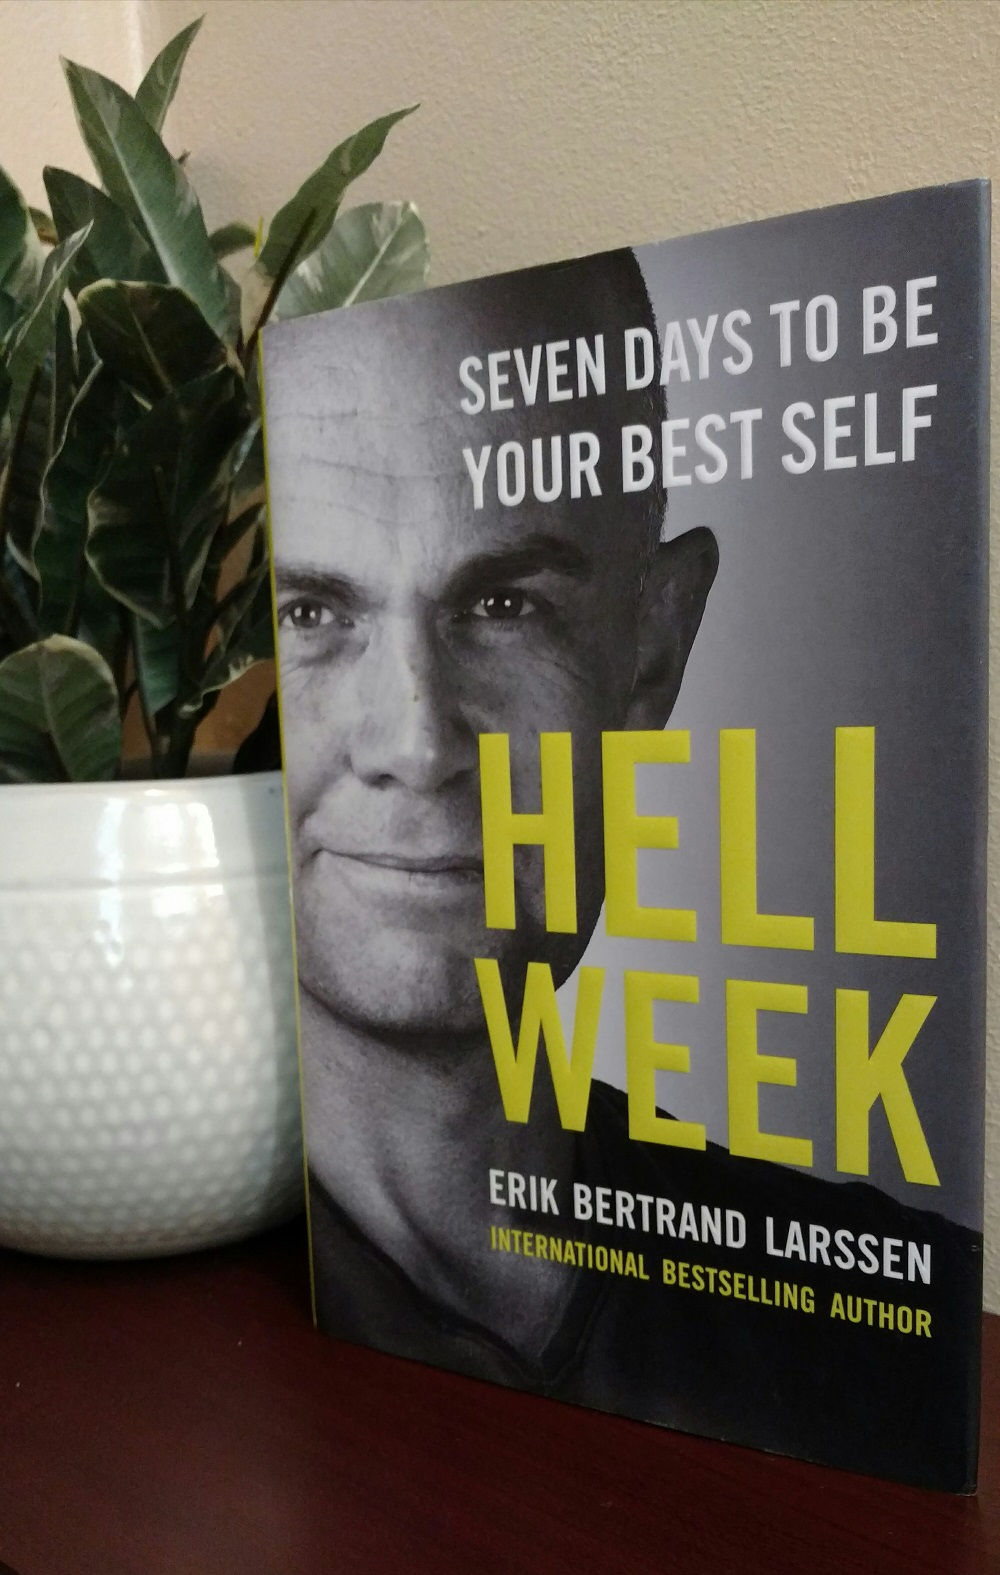 Can This Book Help Me Live a Better Life in Just 7 Days? Hell week erik bertrand larssen